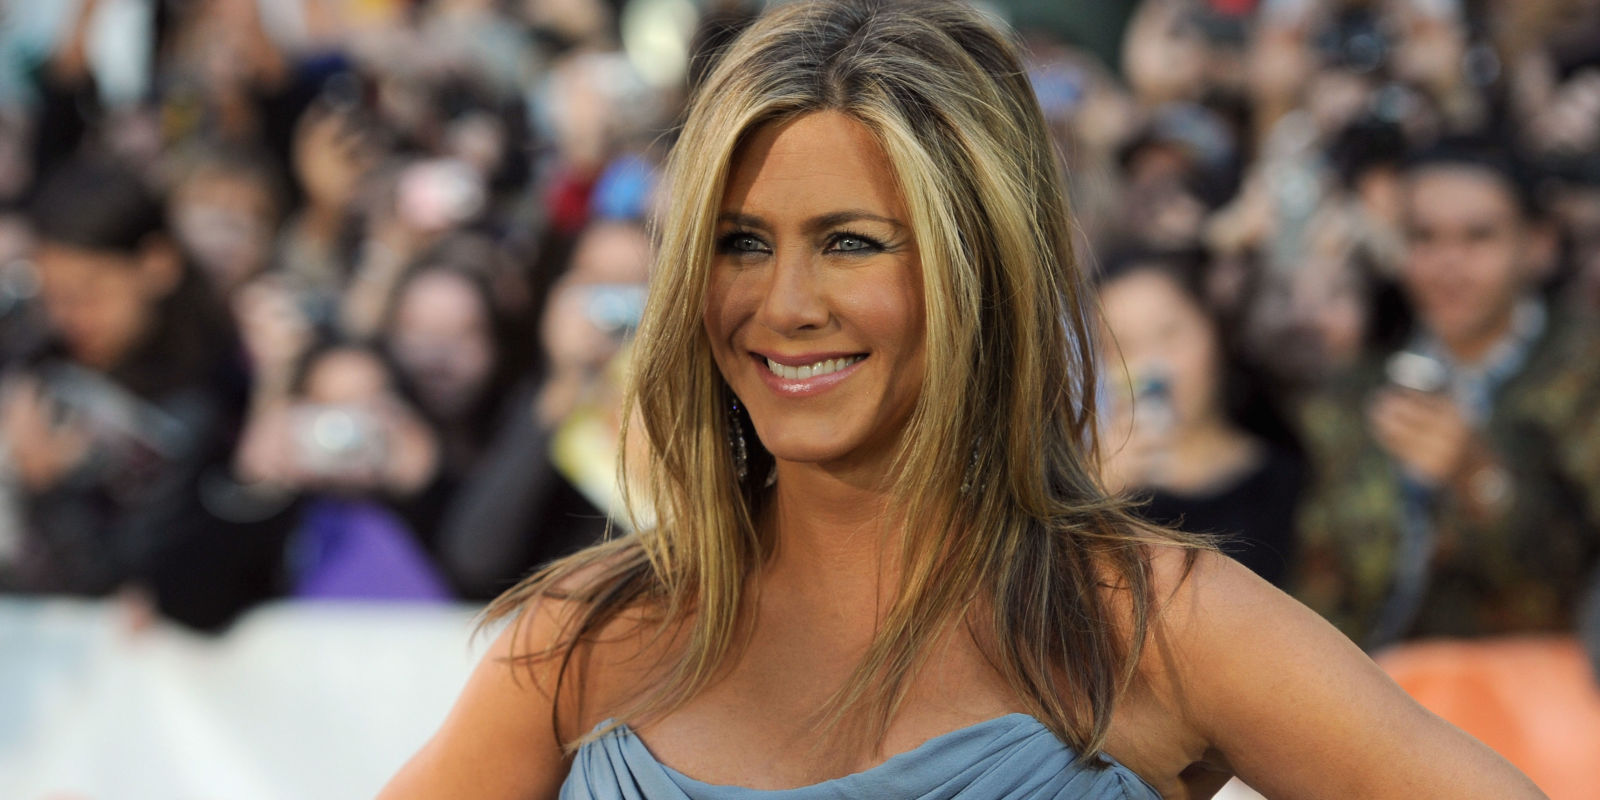 Jennifer Aniston: What Jennifer Aniston Does To Make 48 Look 28